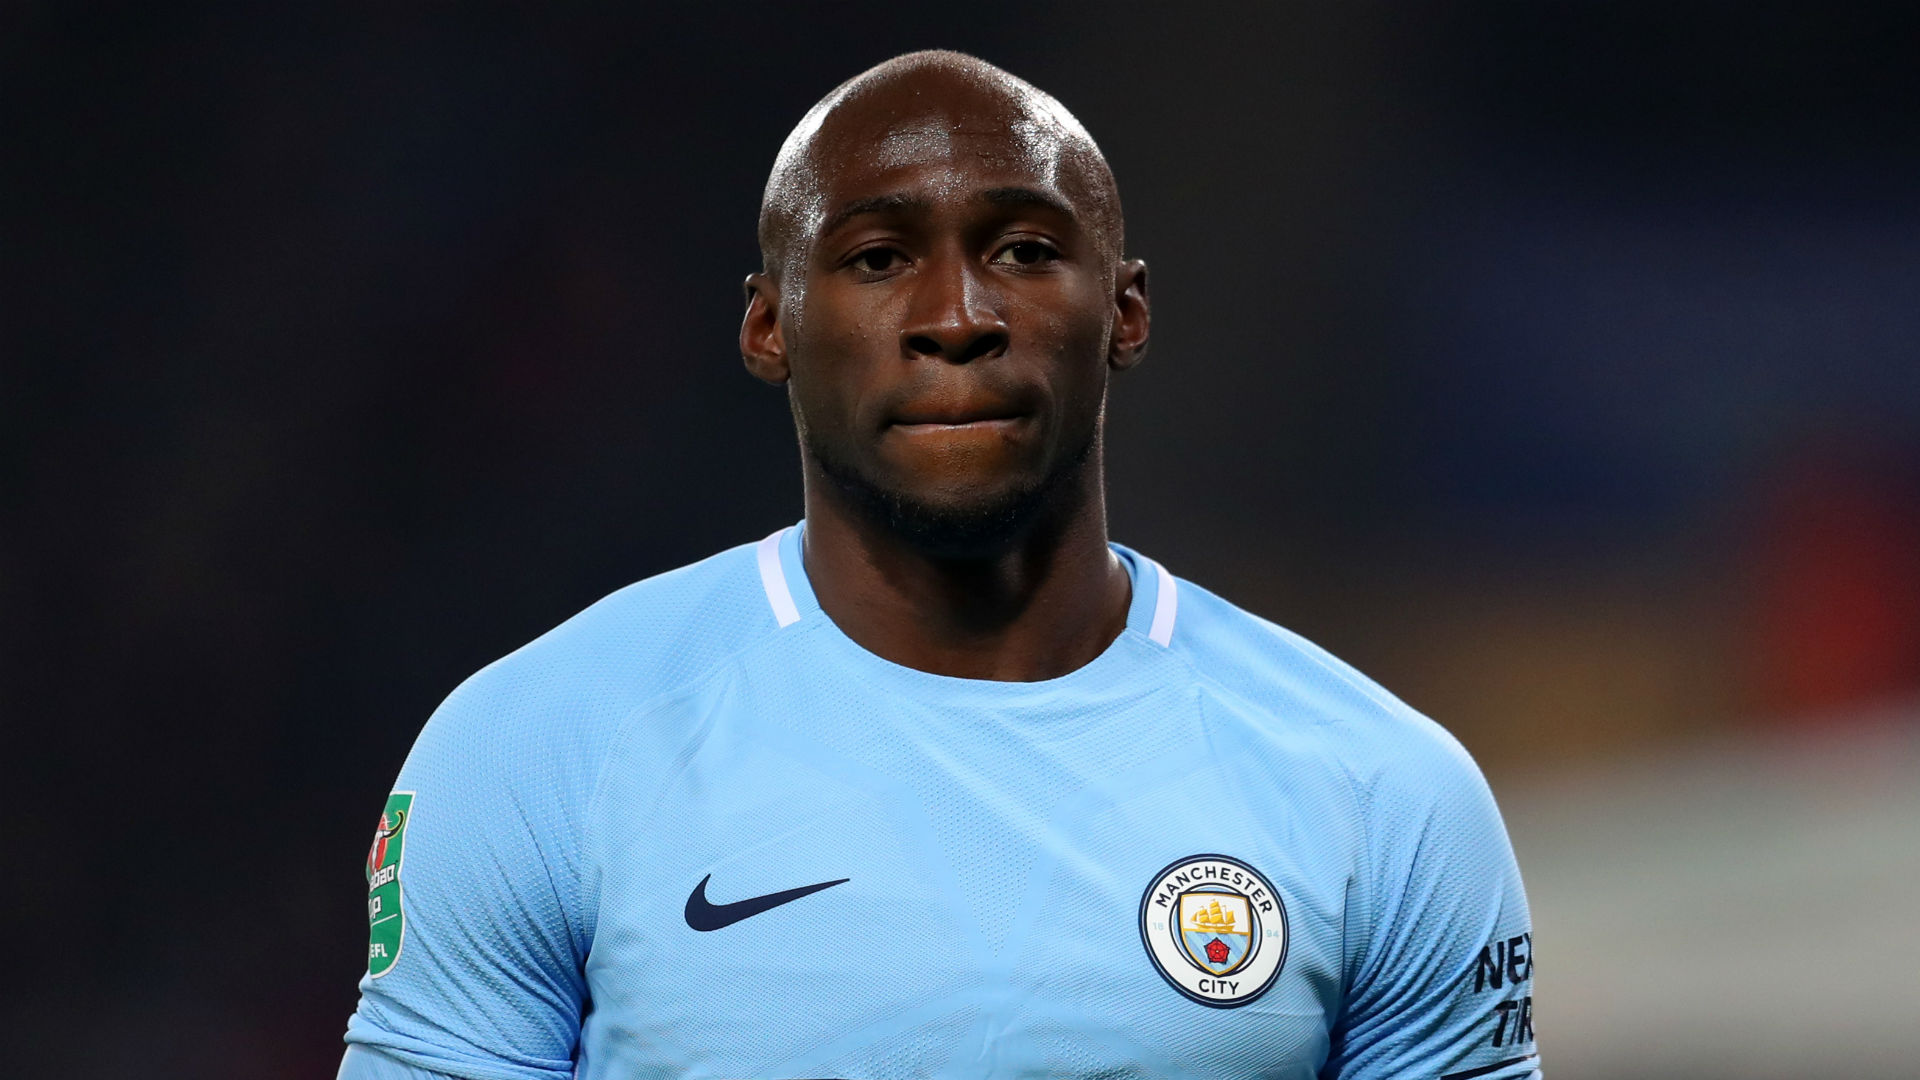 Manchester City outcast Mangala handed one-year contract extension